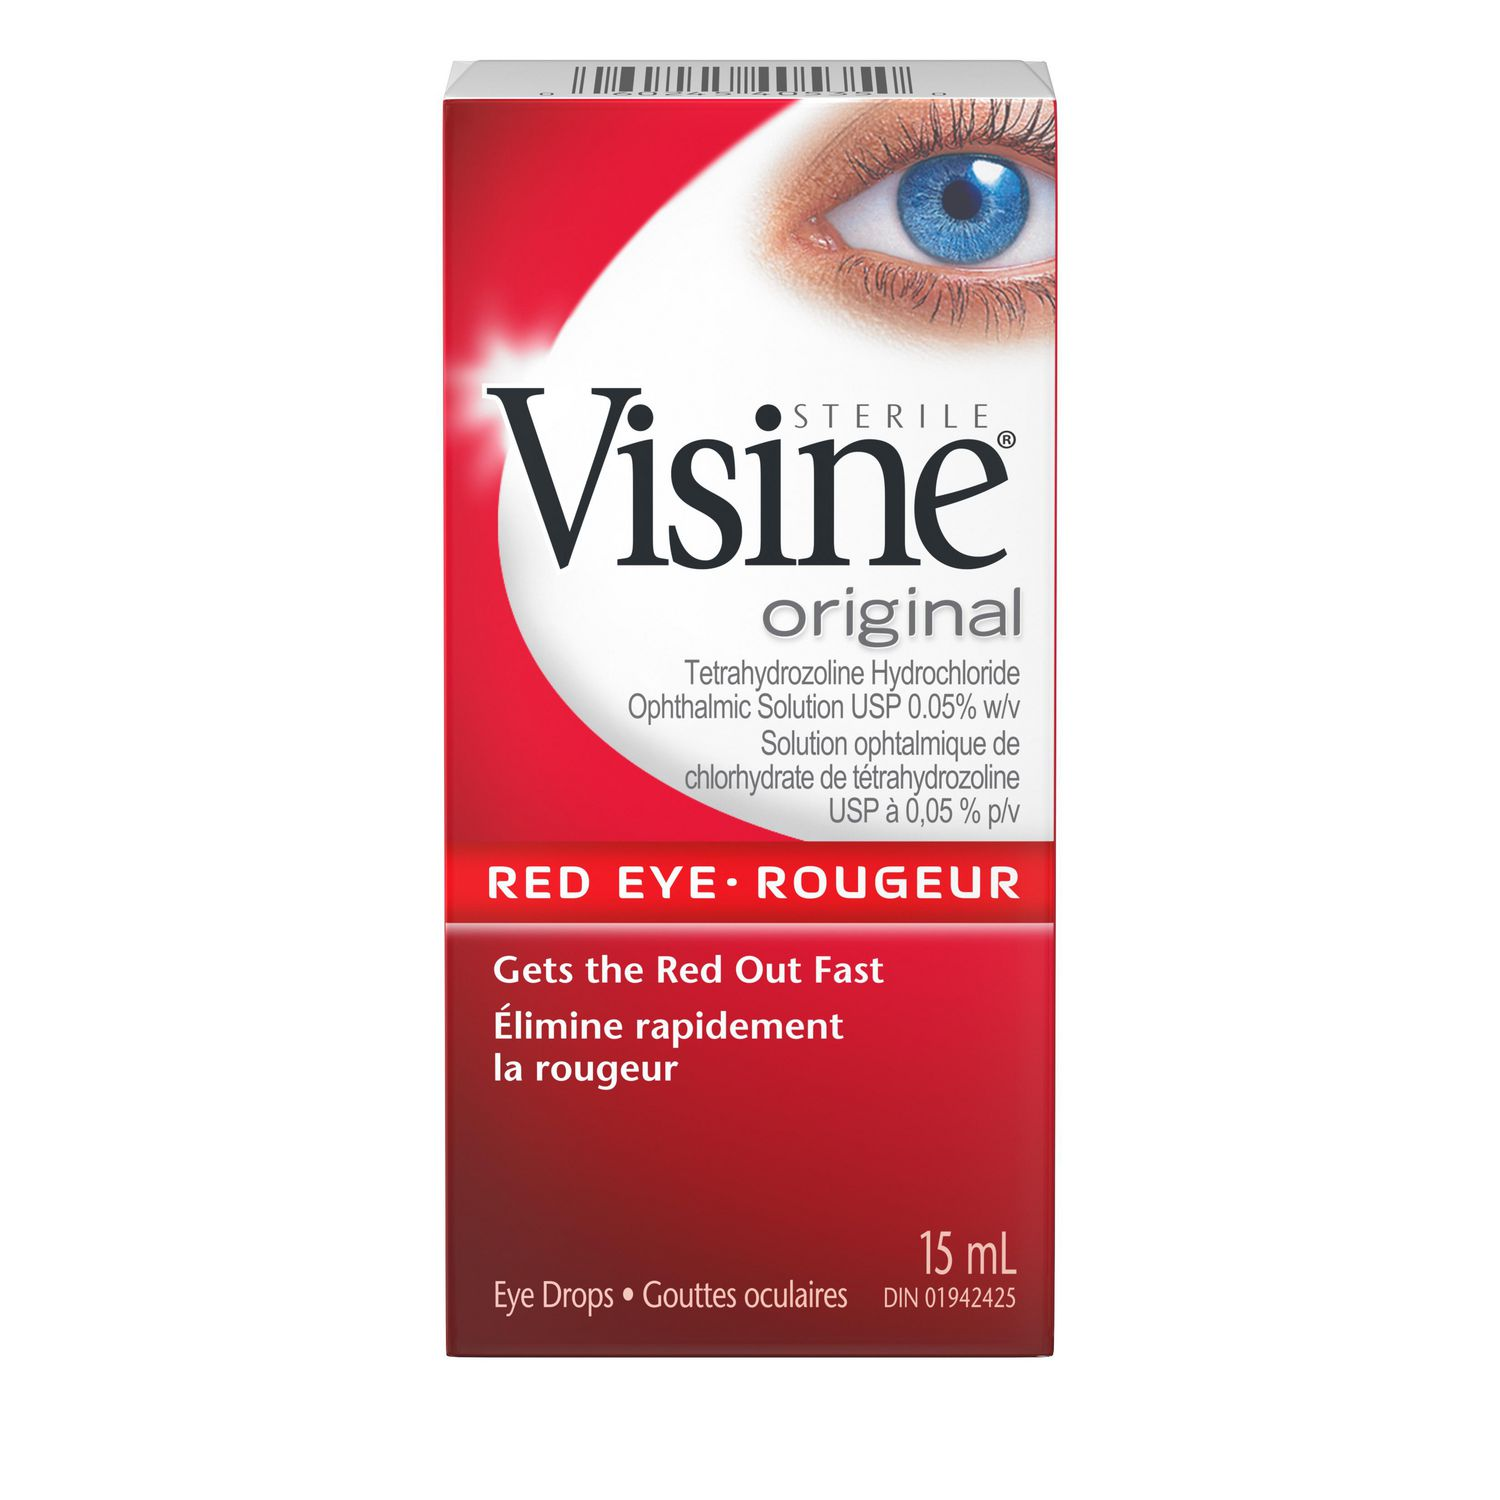 Product Visine package